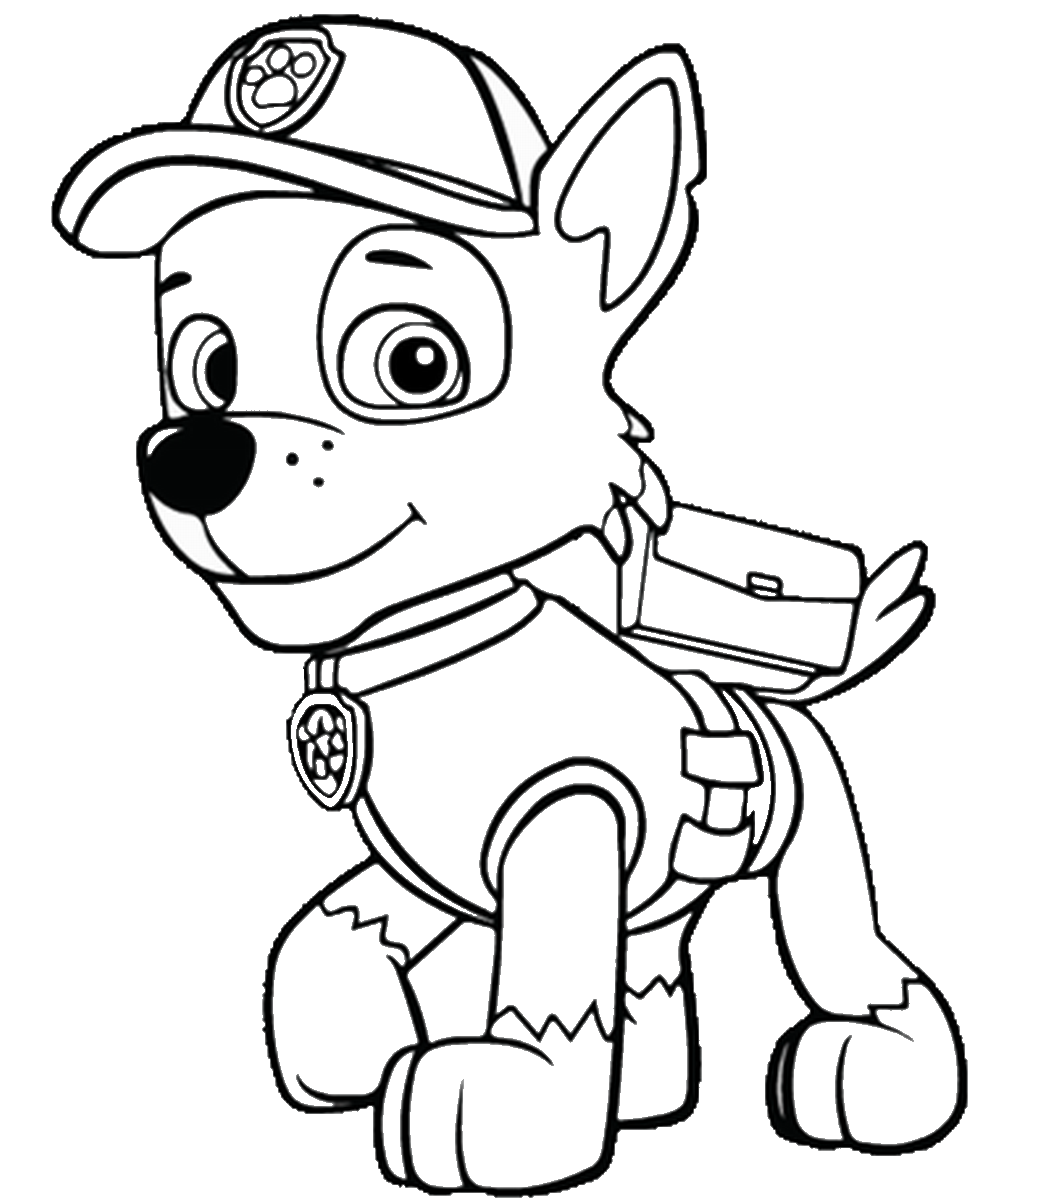 Coloring Pages Of Paw Patrol : Free paw patrouille coloring pages